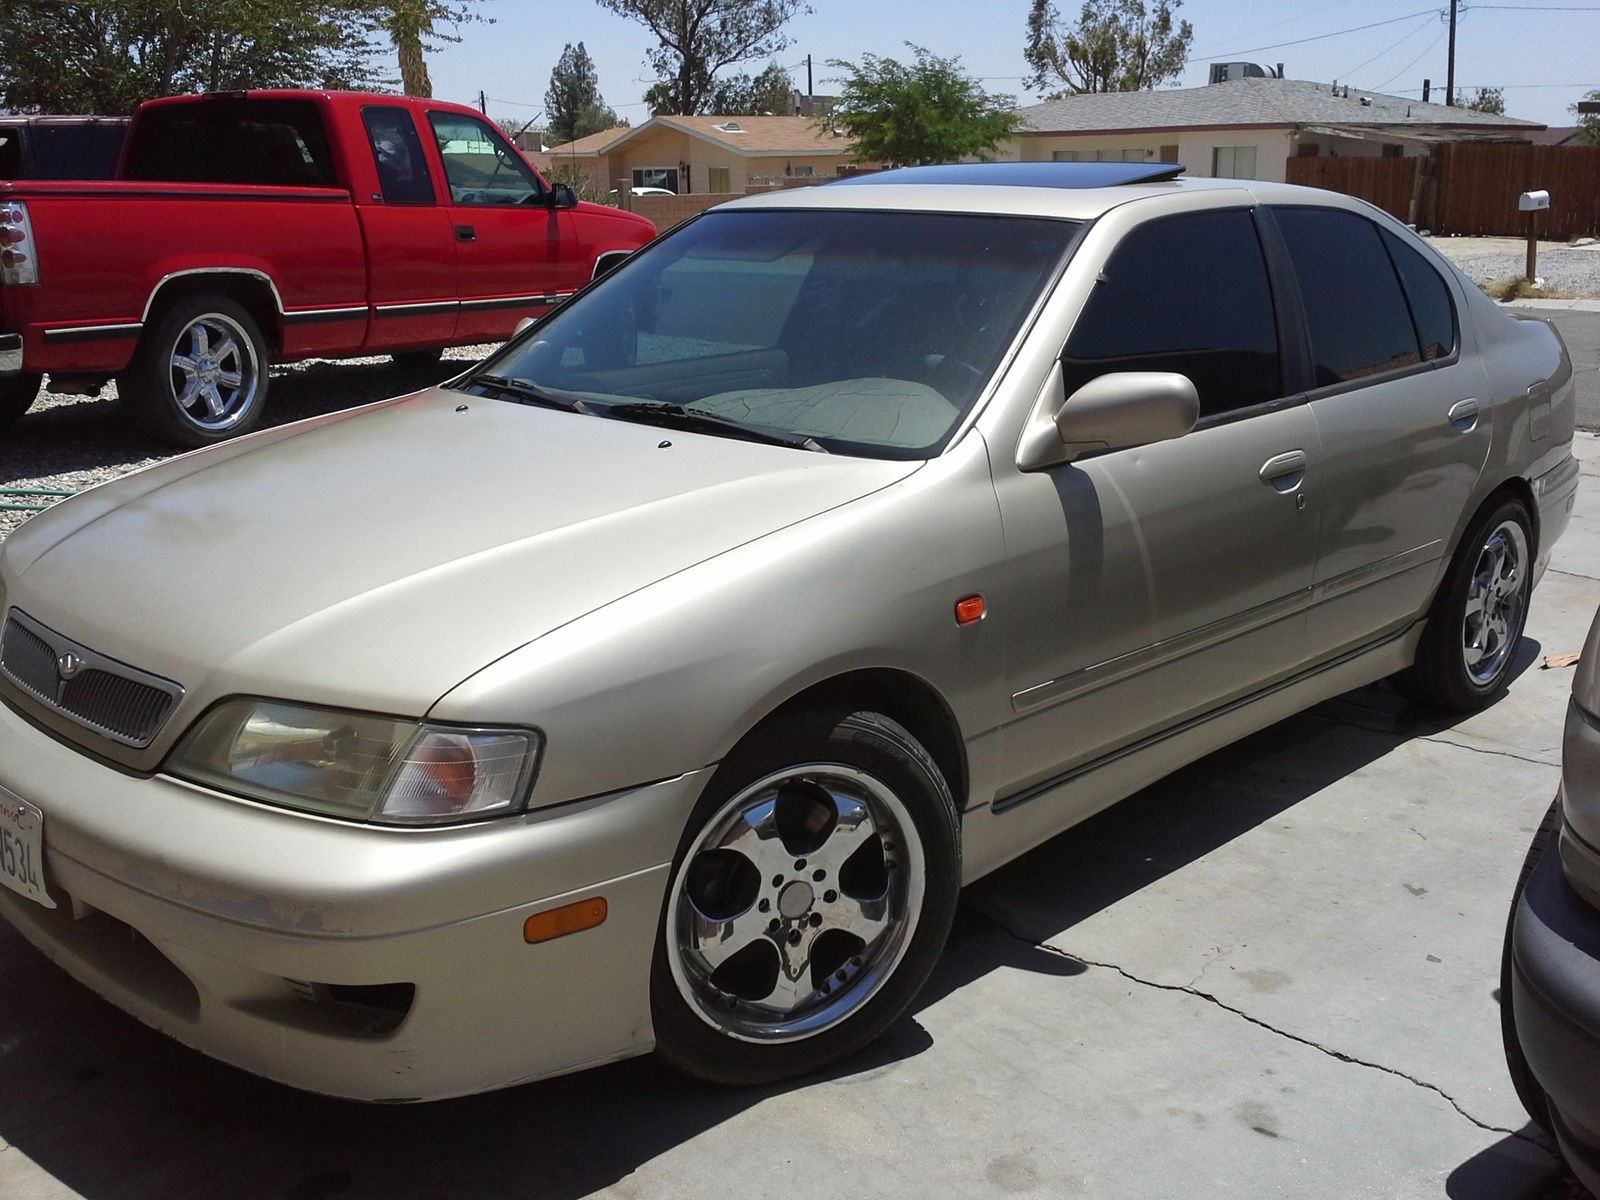 Picture of 1999 Infiniti G20 4 Dr Touring Sedan